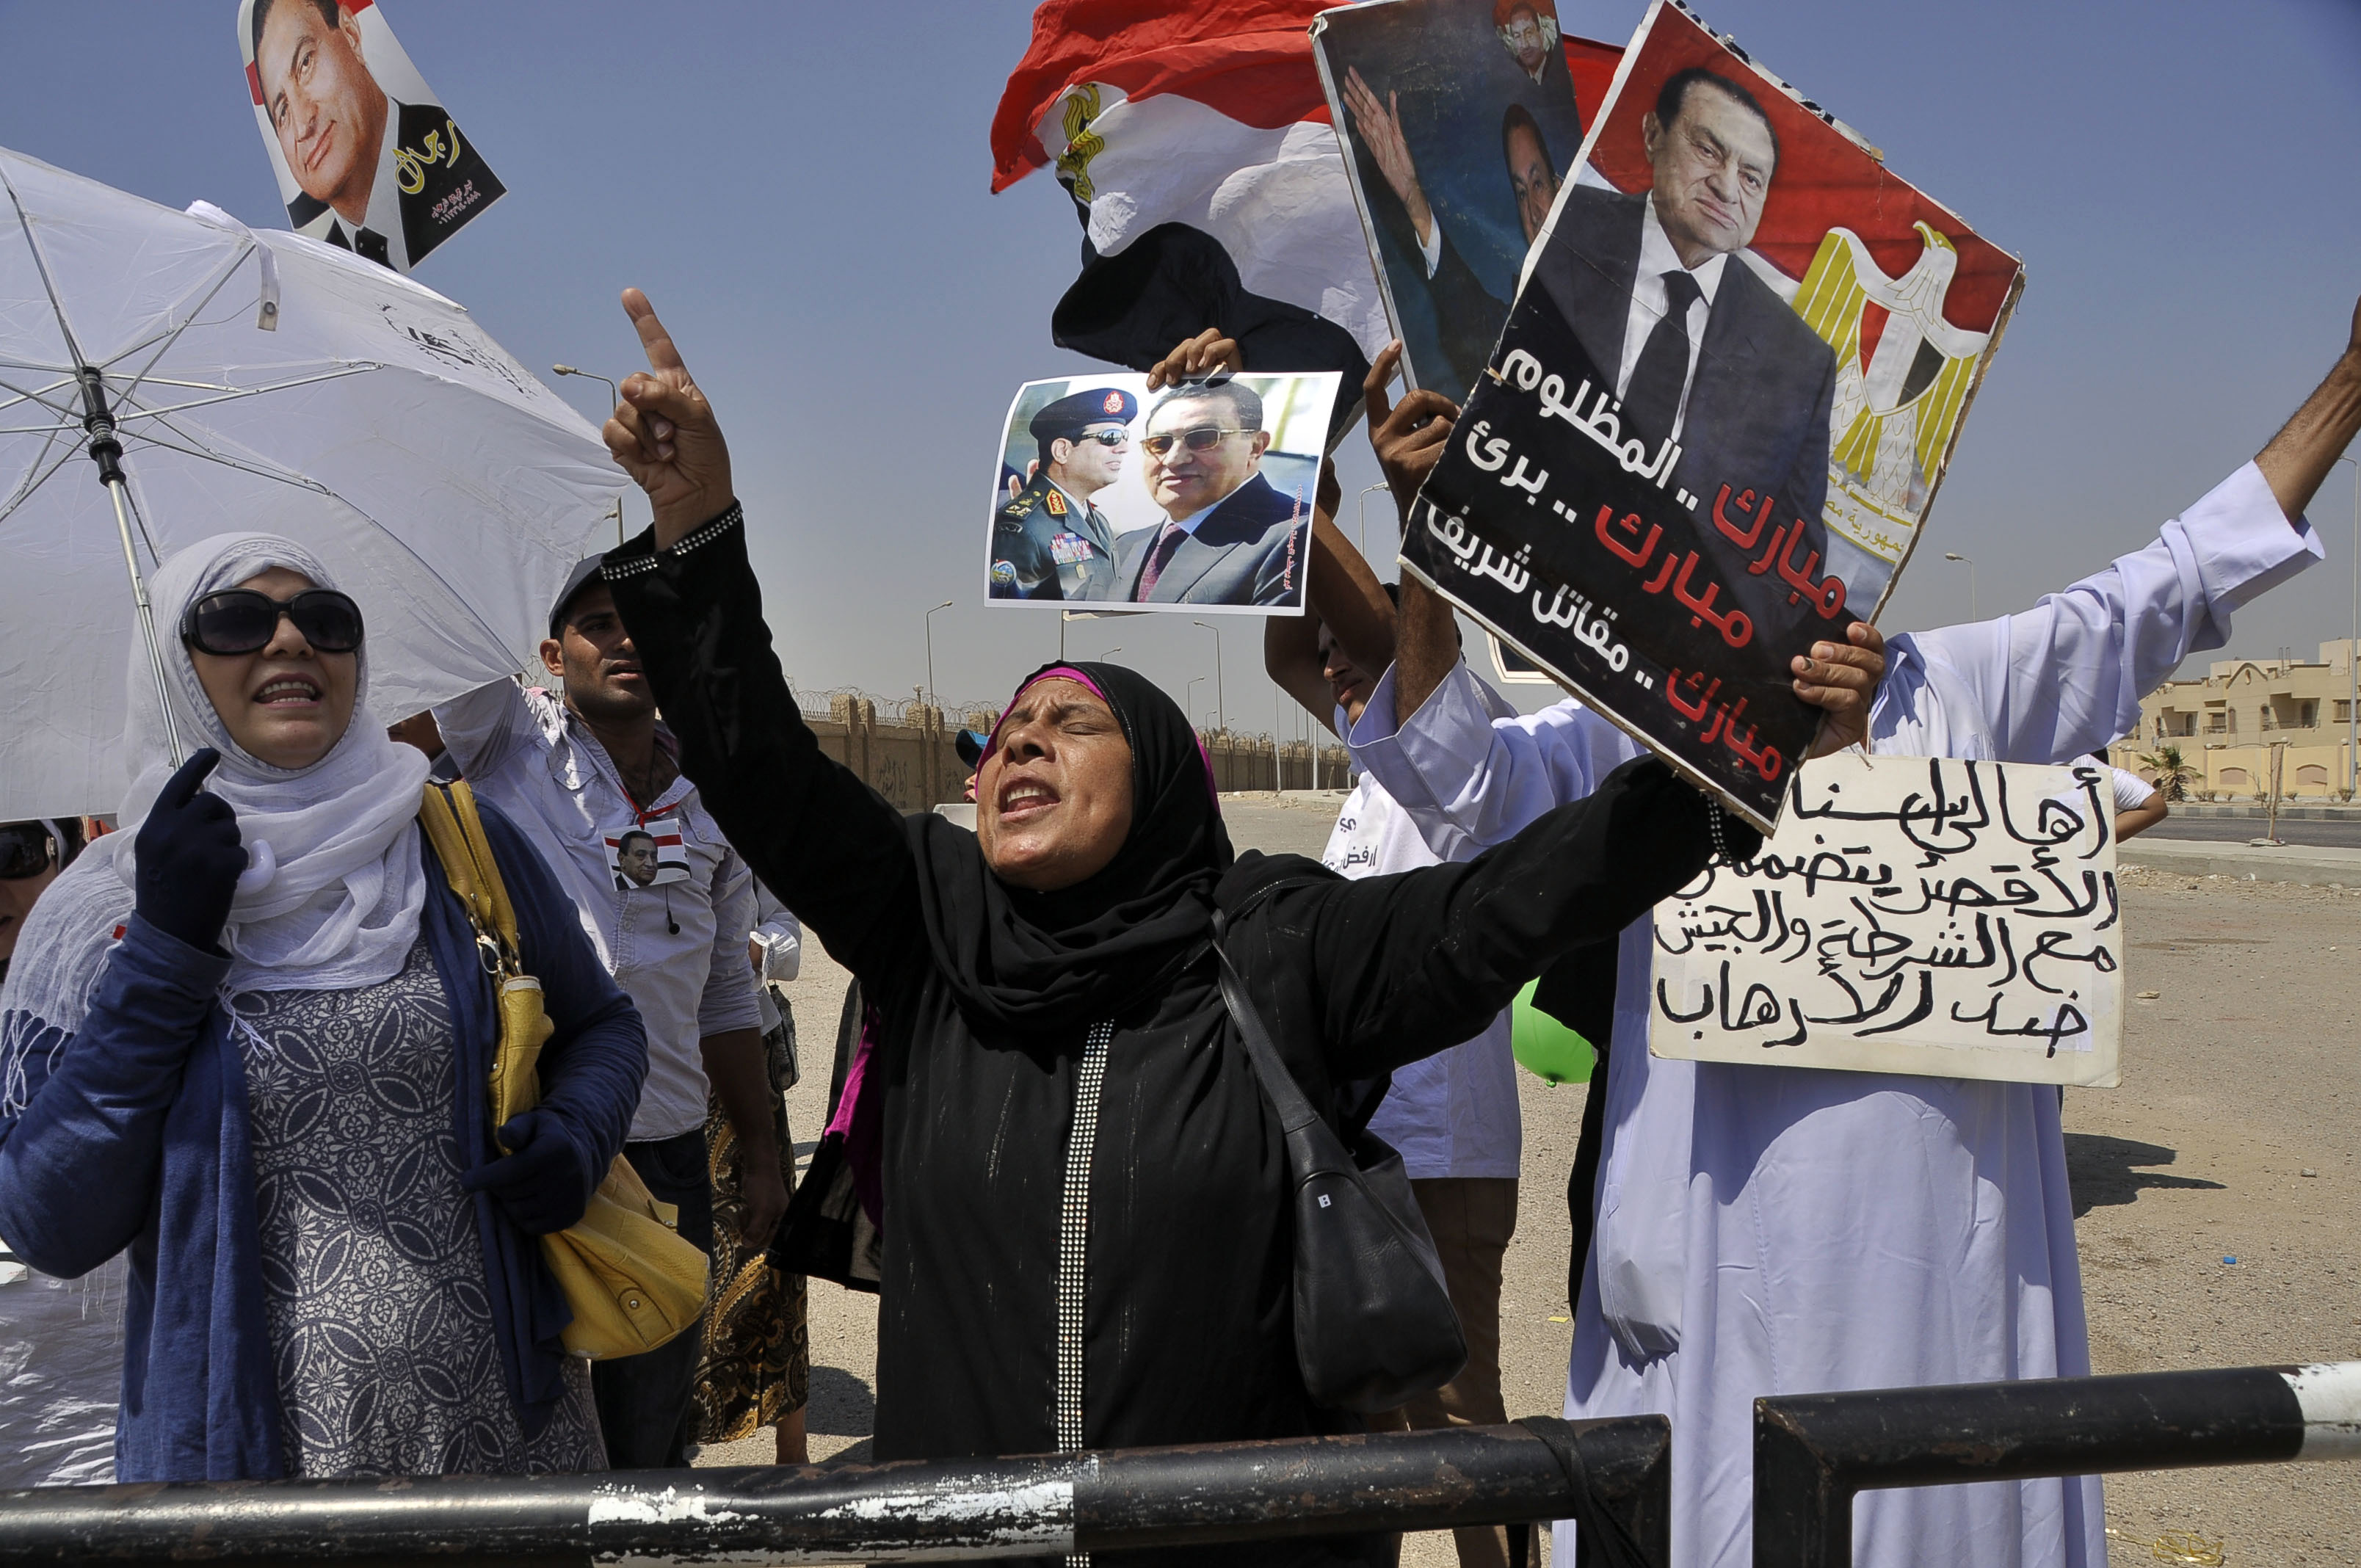 Supporters of former Egyptian president Hosni Mubarak chant slogans and wave his portrait outside the Police Academy ahead of his trial on August, 25 2013 in Cairo.  (AFP Photo)